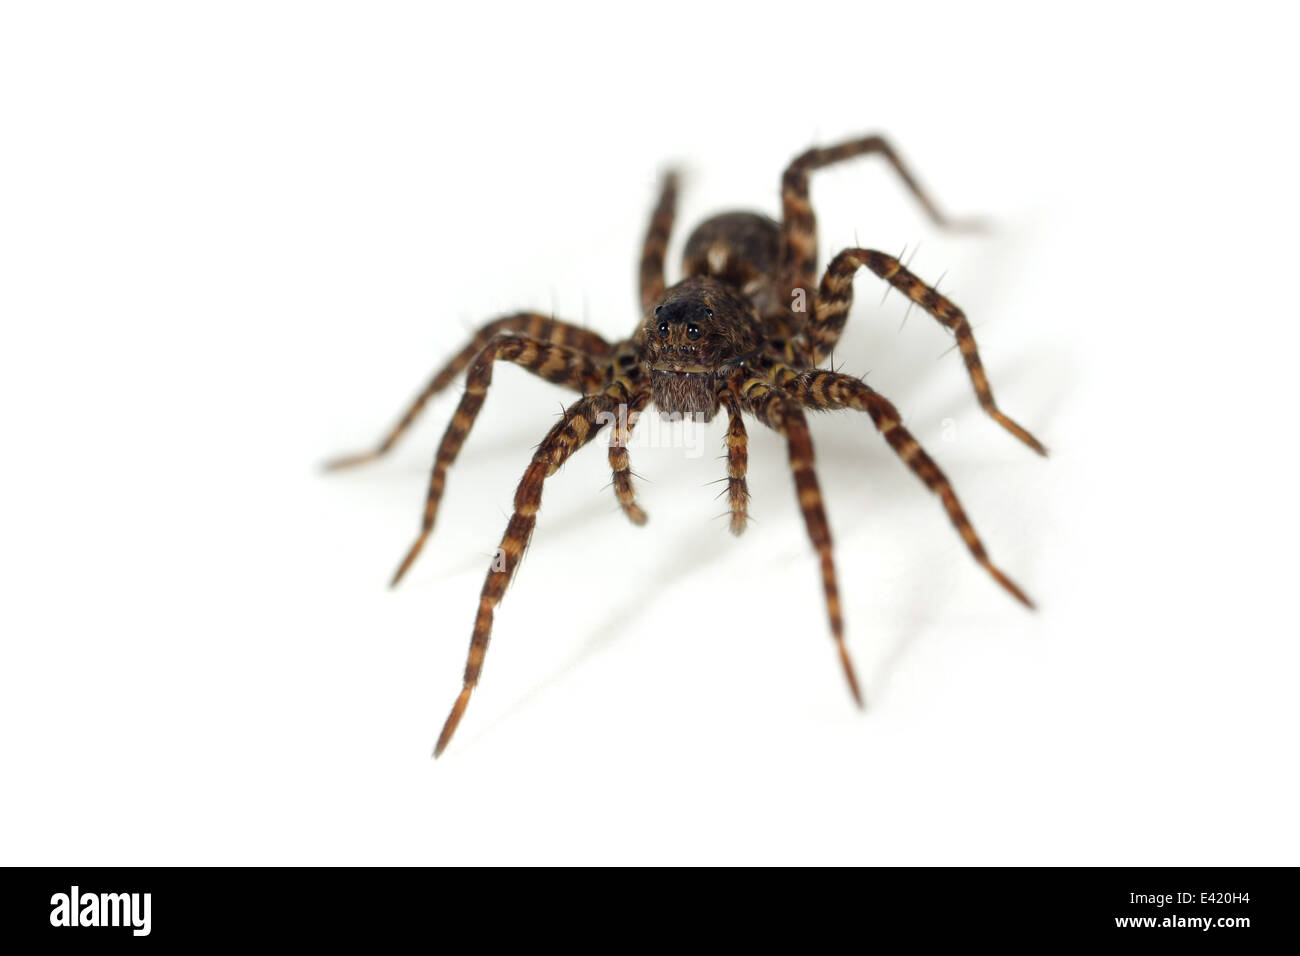 Female Pardosa amentata (Spotted wolf spider), part of the family Lycosidae - Wolf spiders. Isolated on white background. - Stock Image